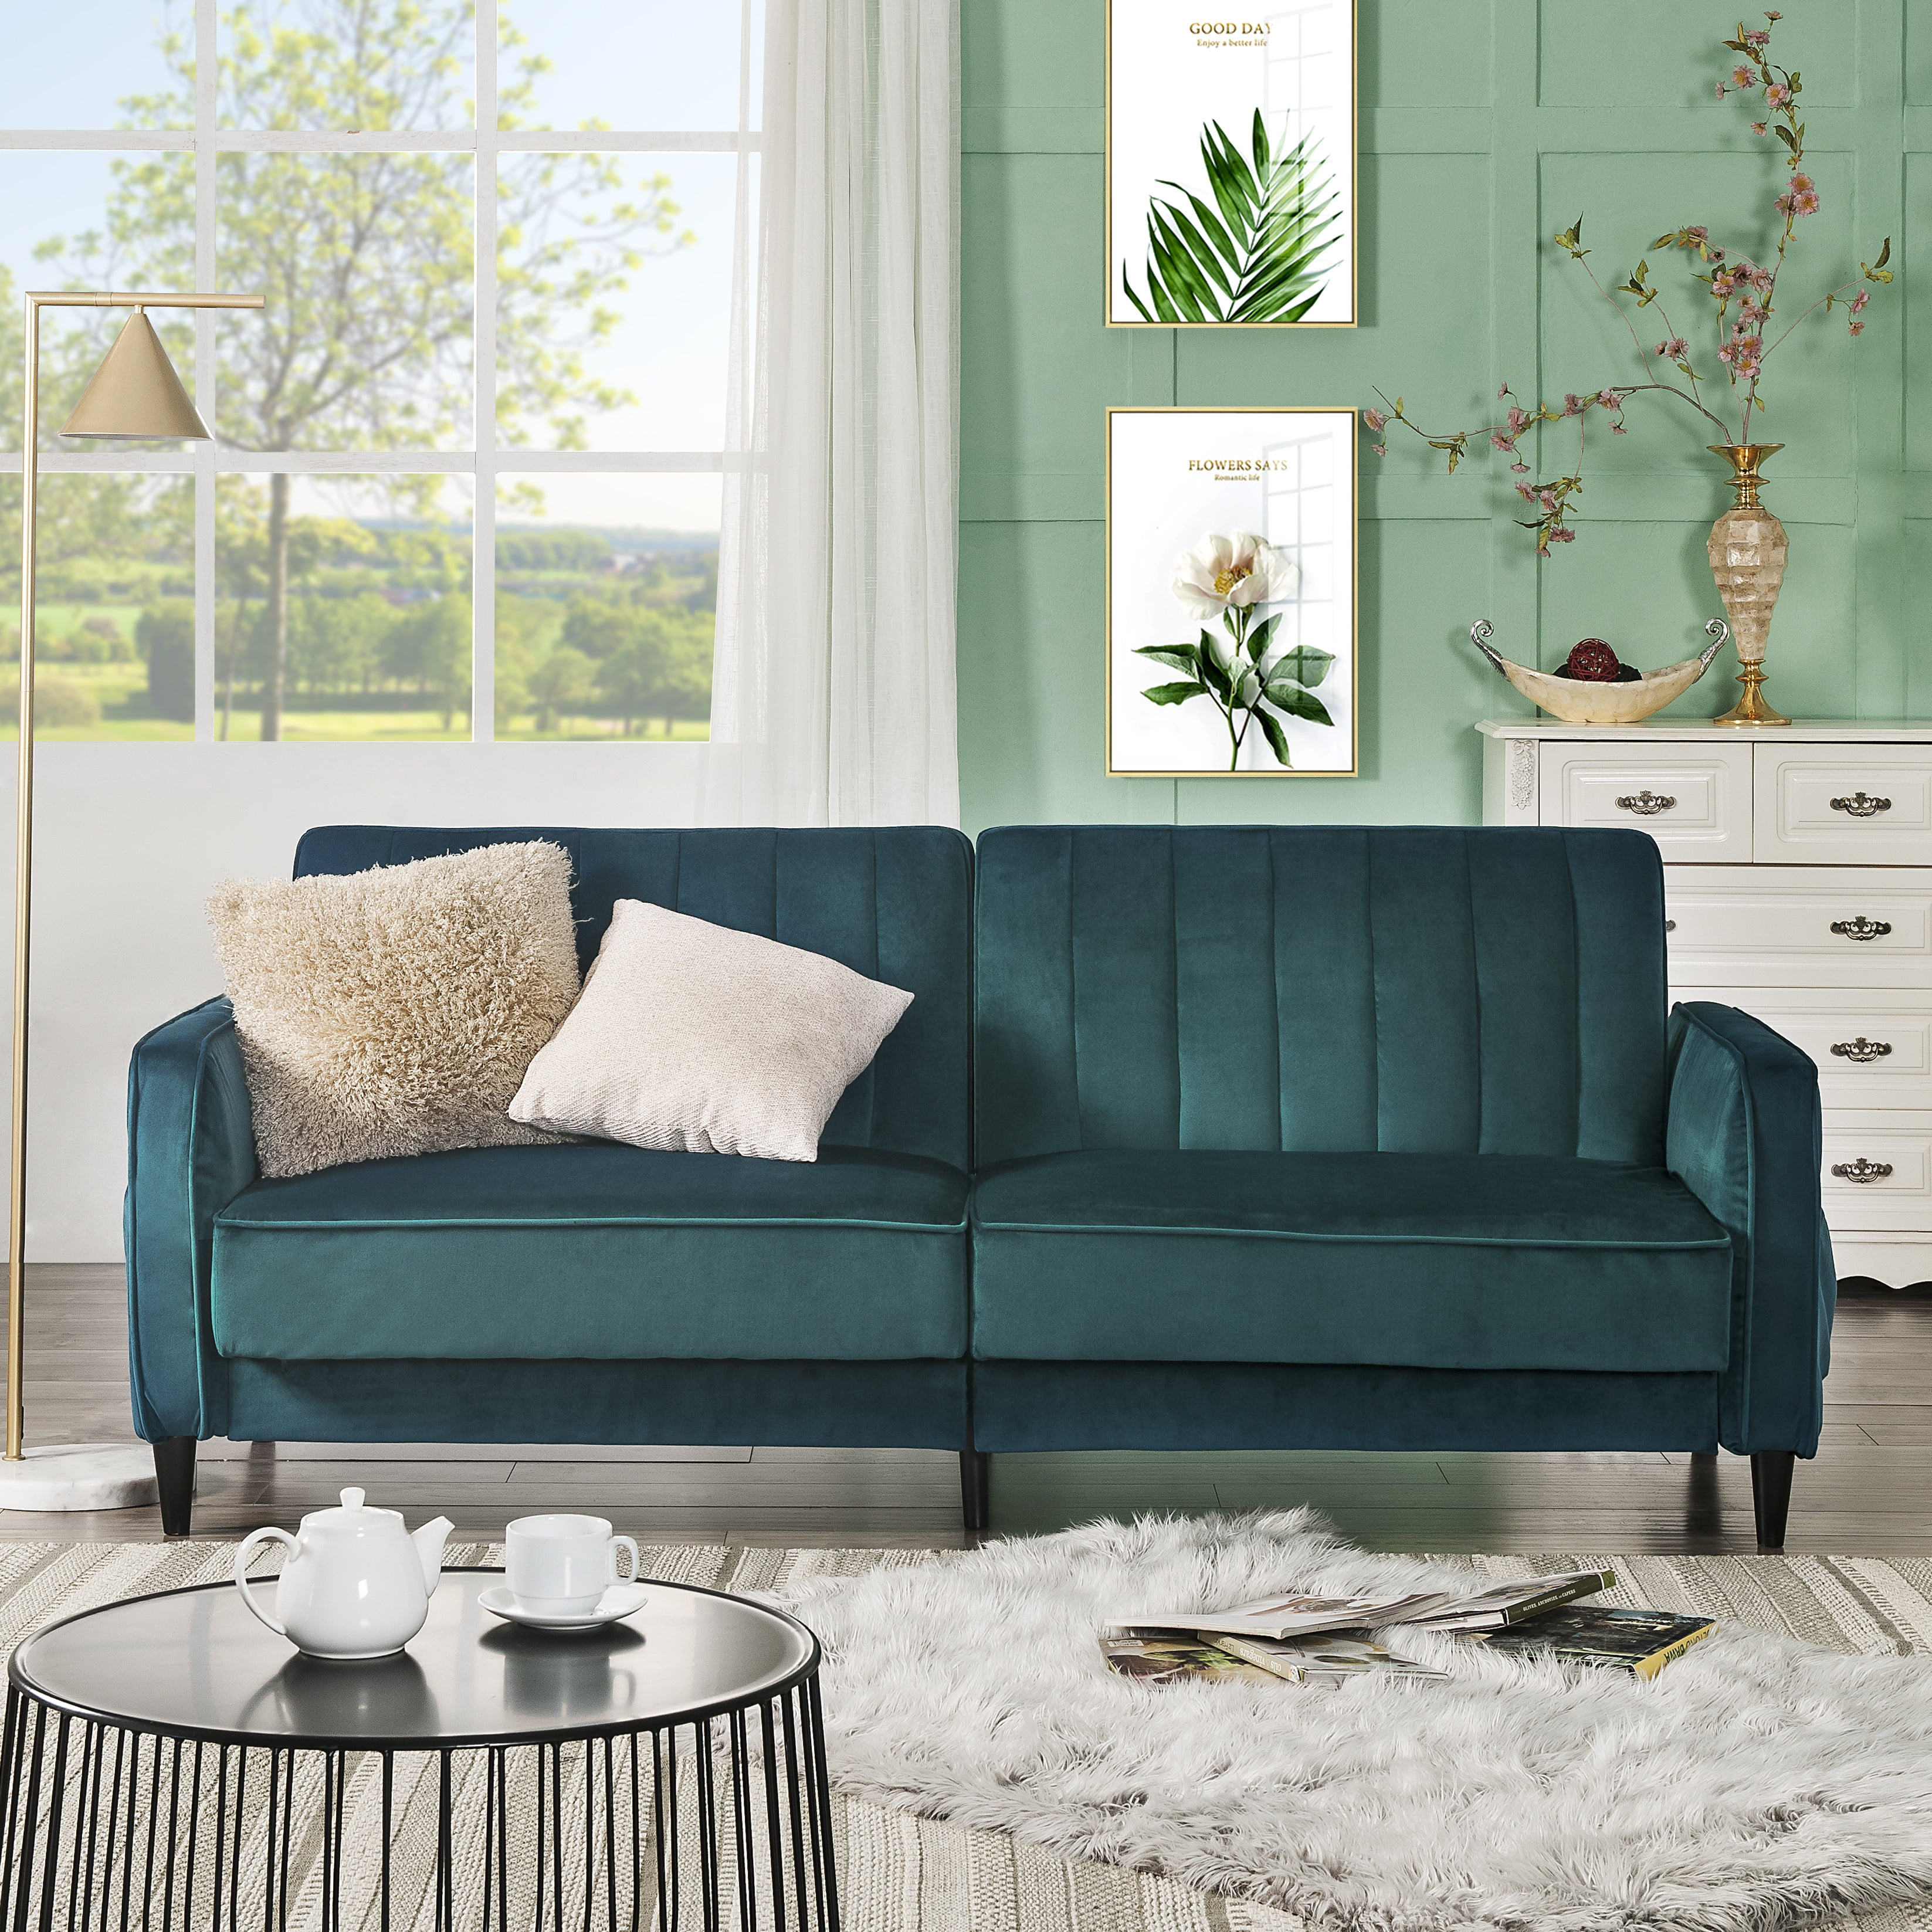 Mid Century Modern Sofa Bed, 3 Seater Sectional Sofa with ...